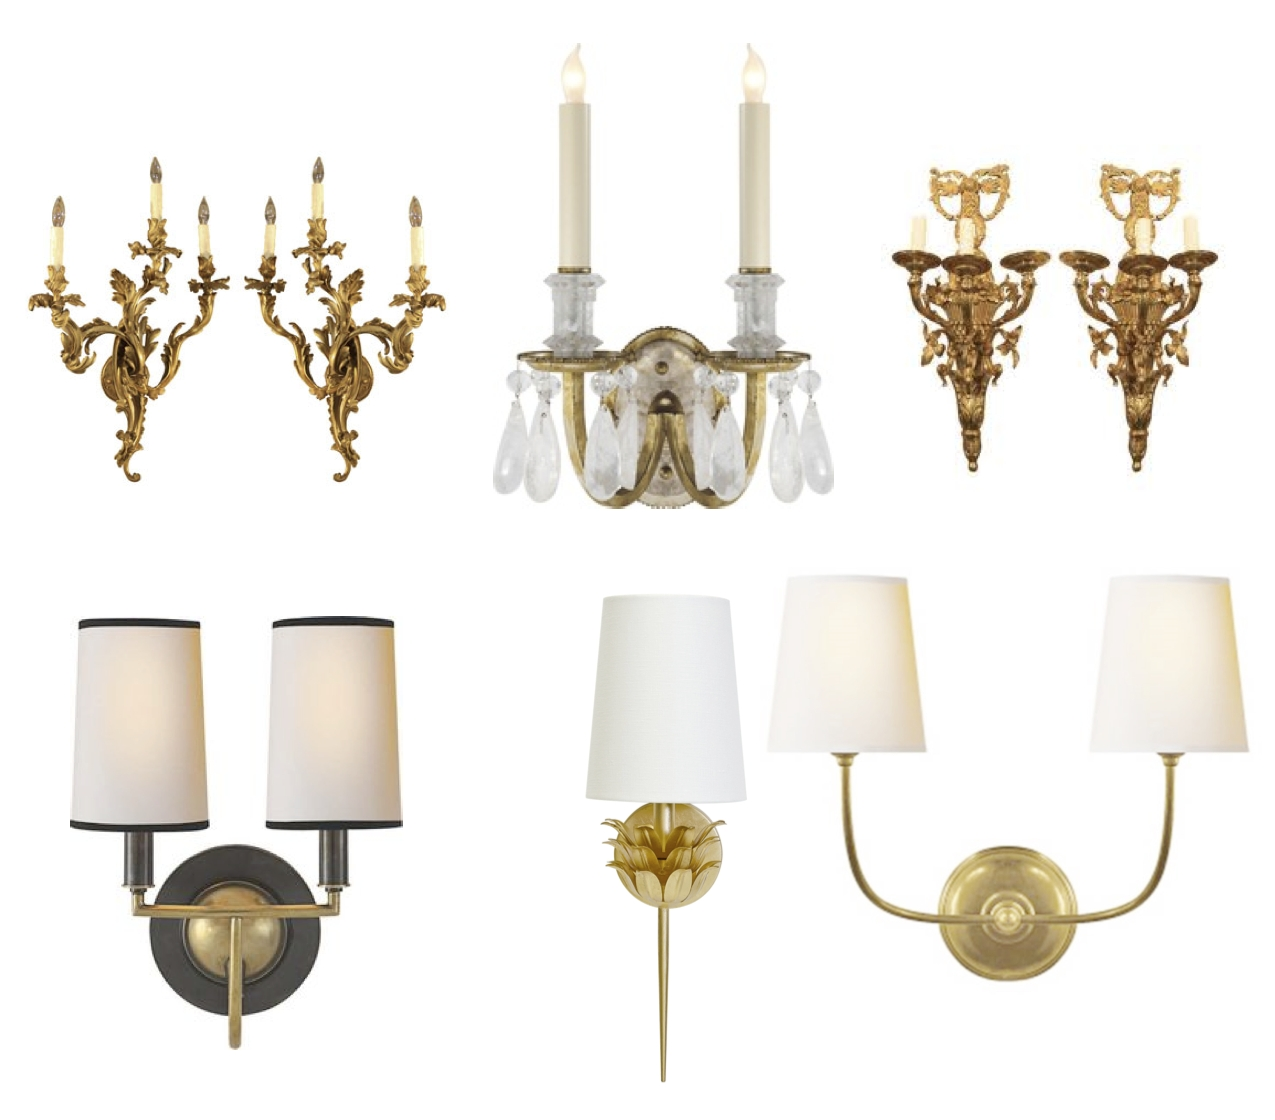 Lighting House Appeal Pertaining To Wall Mounted Chandeliers (View 3 of 25)